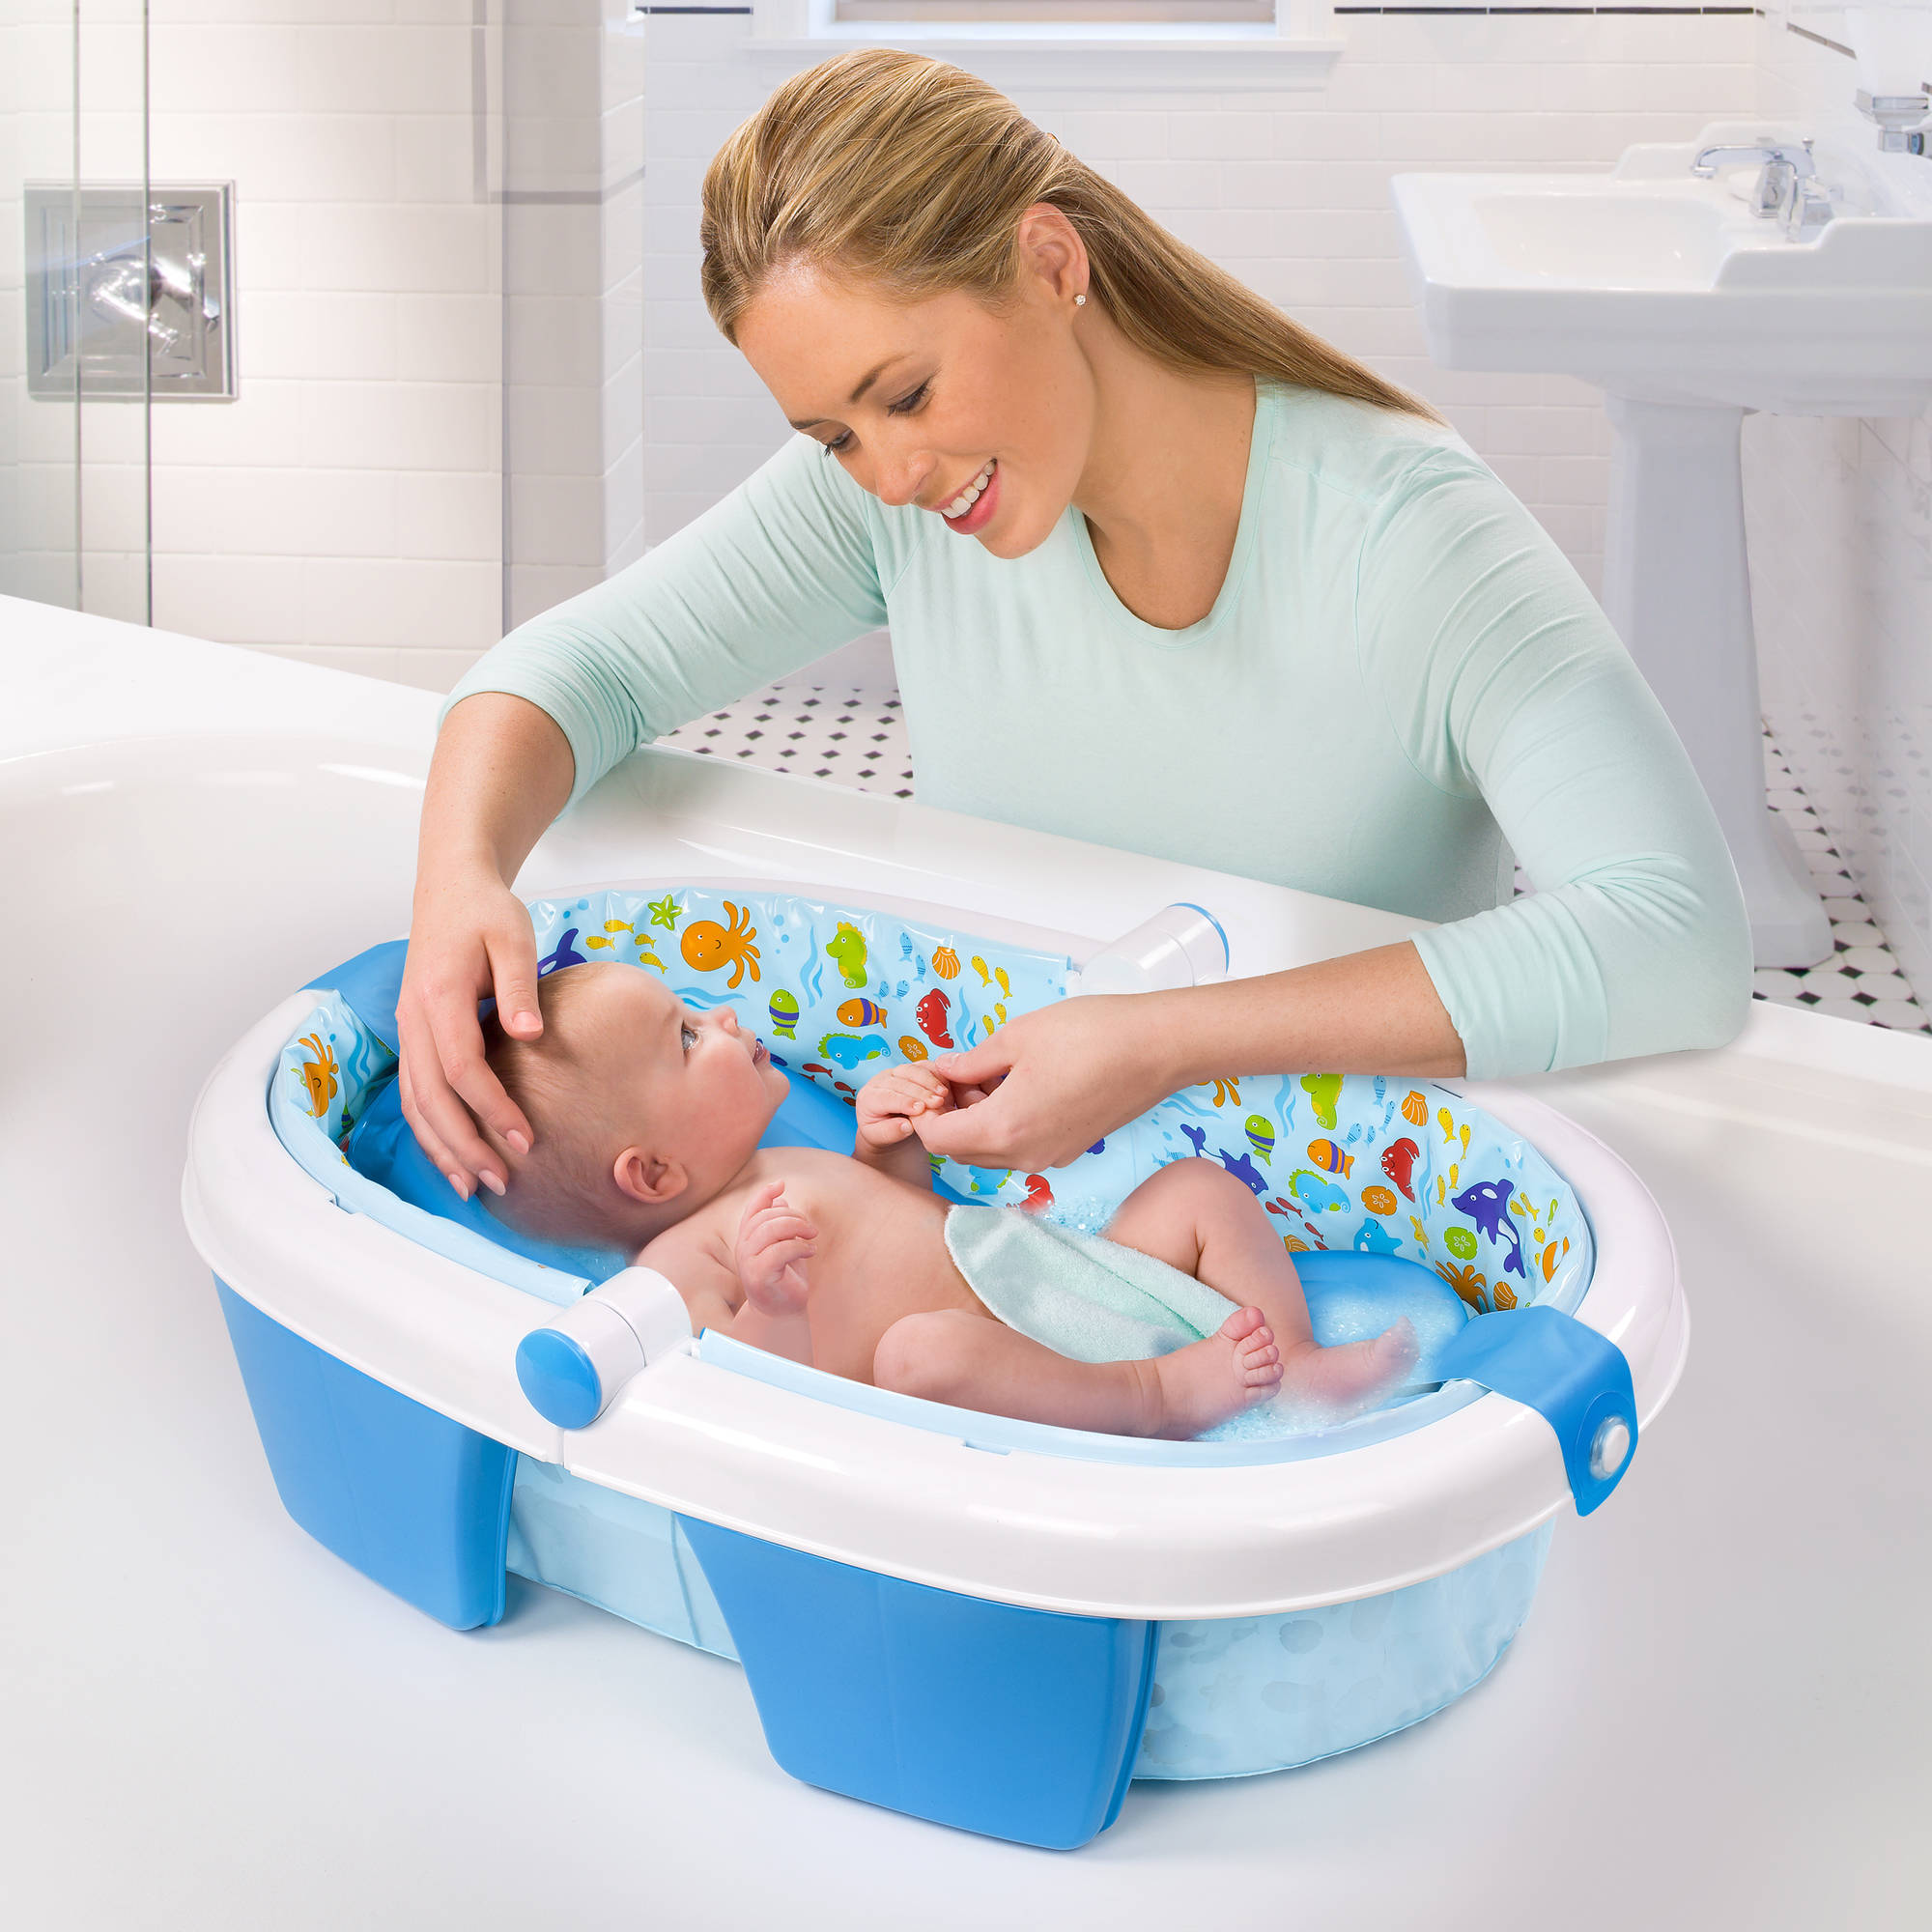 Summer Infant Foldaway Baby Bath - Walmart.com